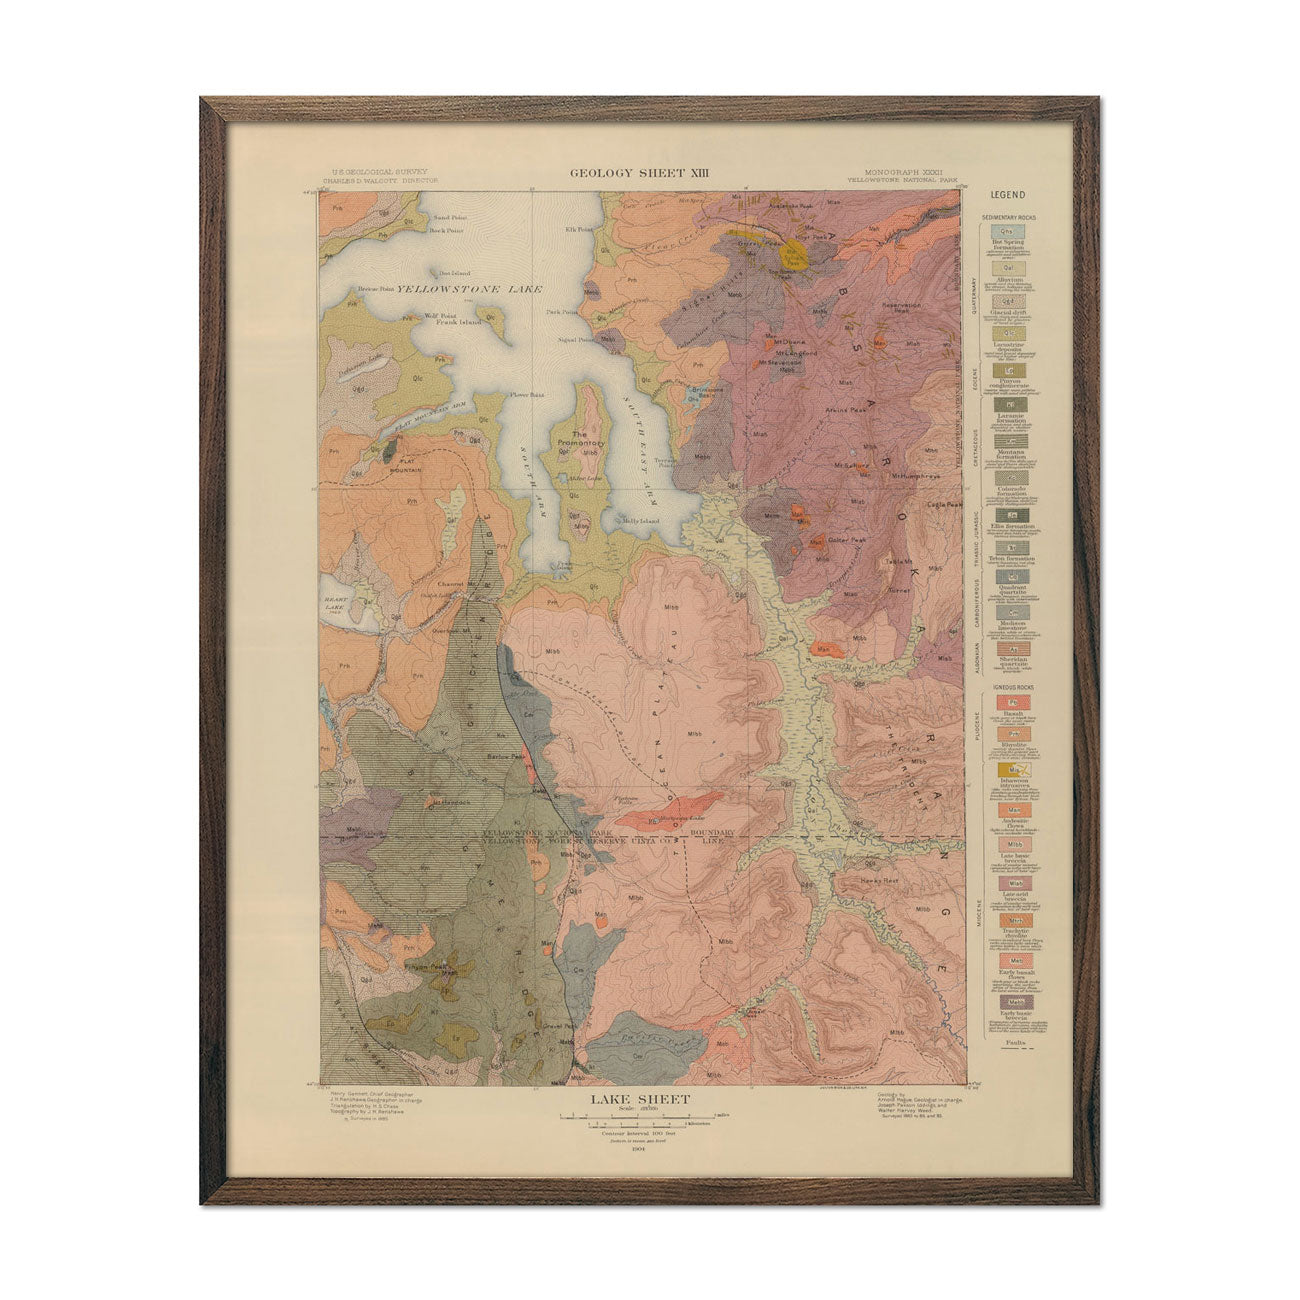 1904 Yellowstone Geologic Map of Lake Section